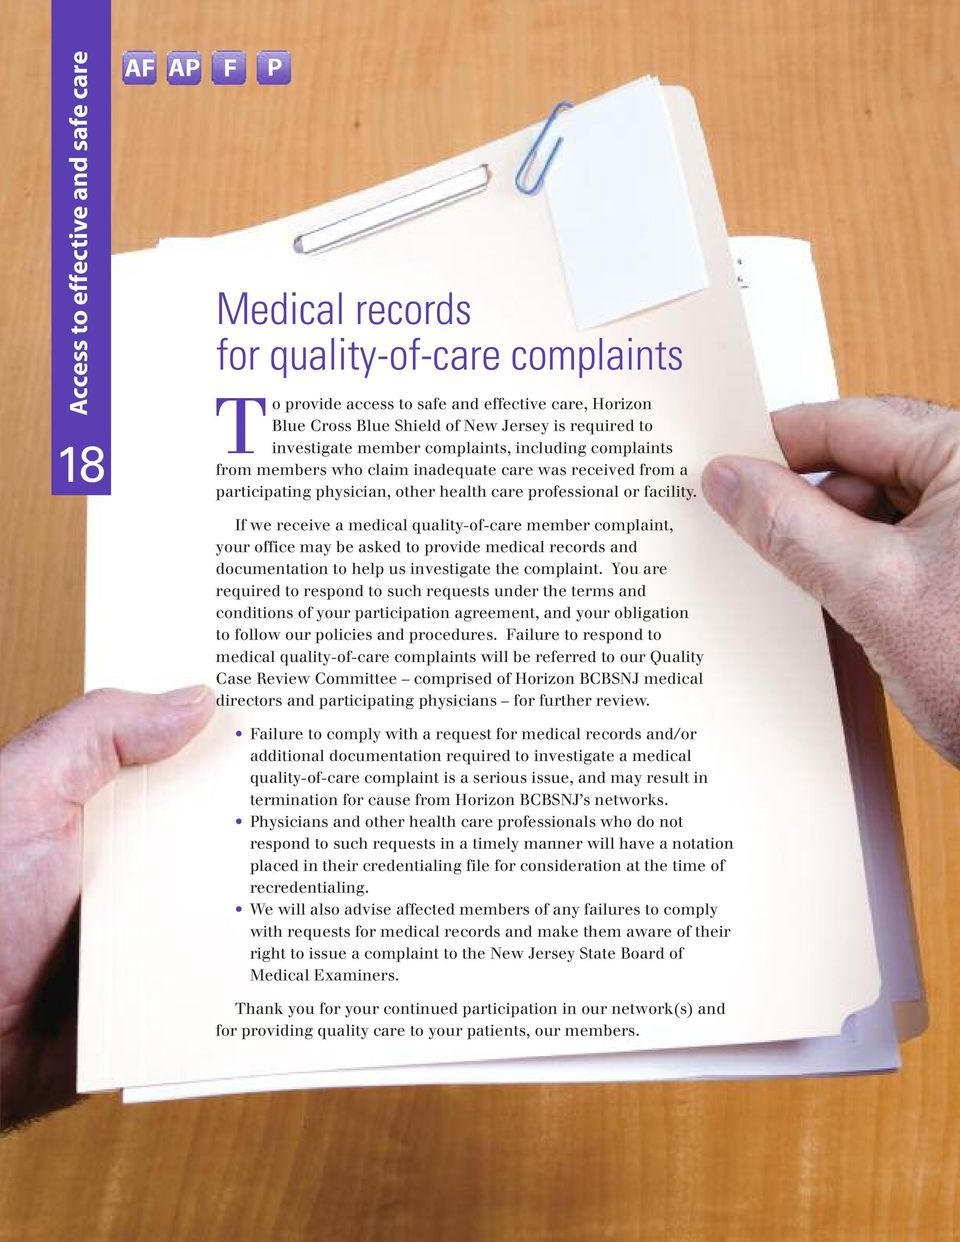 If we receive a medical quality-of-care member complaint, your office may be asked to provide medical records and documentation to help us investigate the complaint.